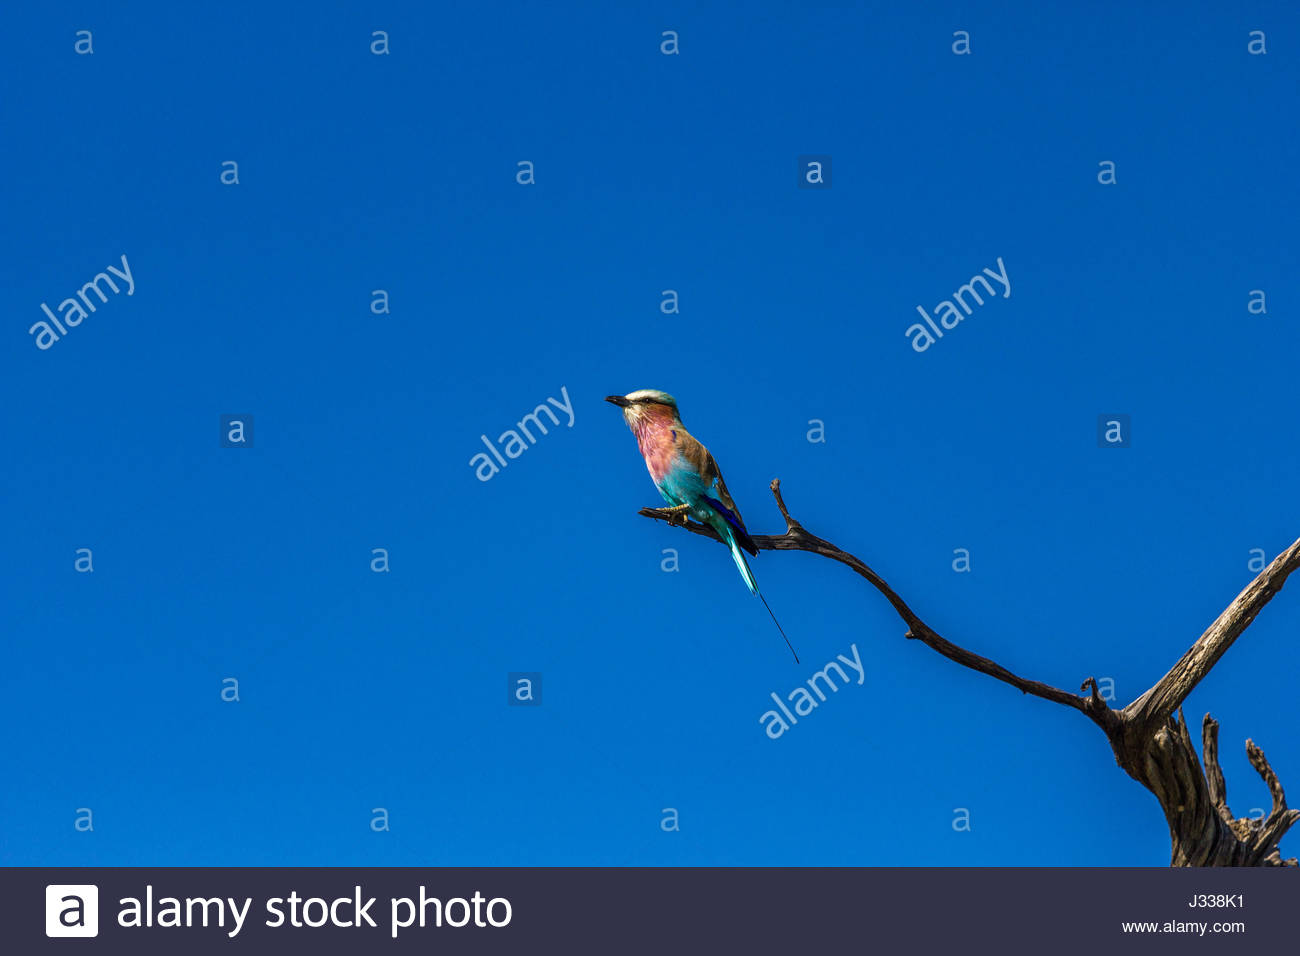 A Lilac-breasted Roller perched on a dead twig. Stock Photo